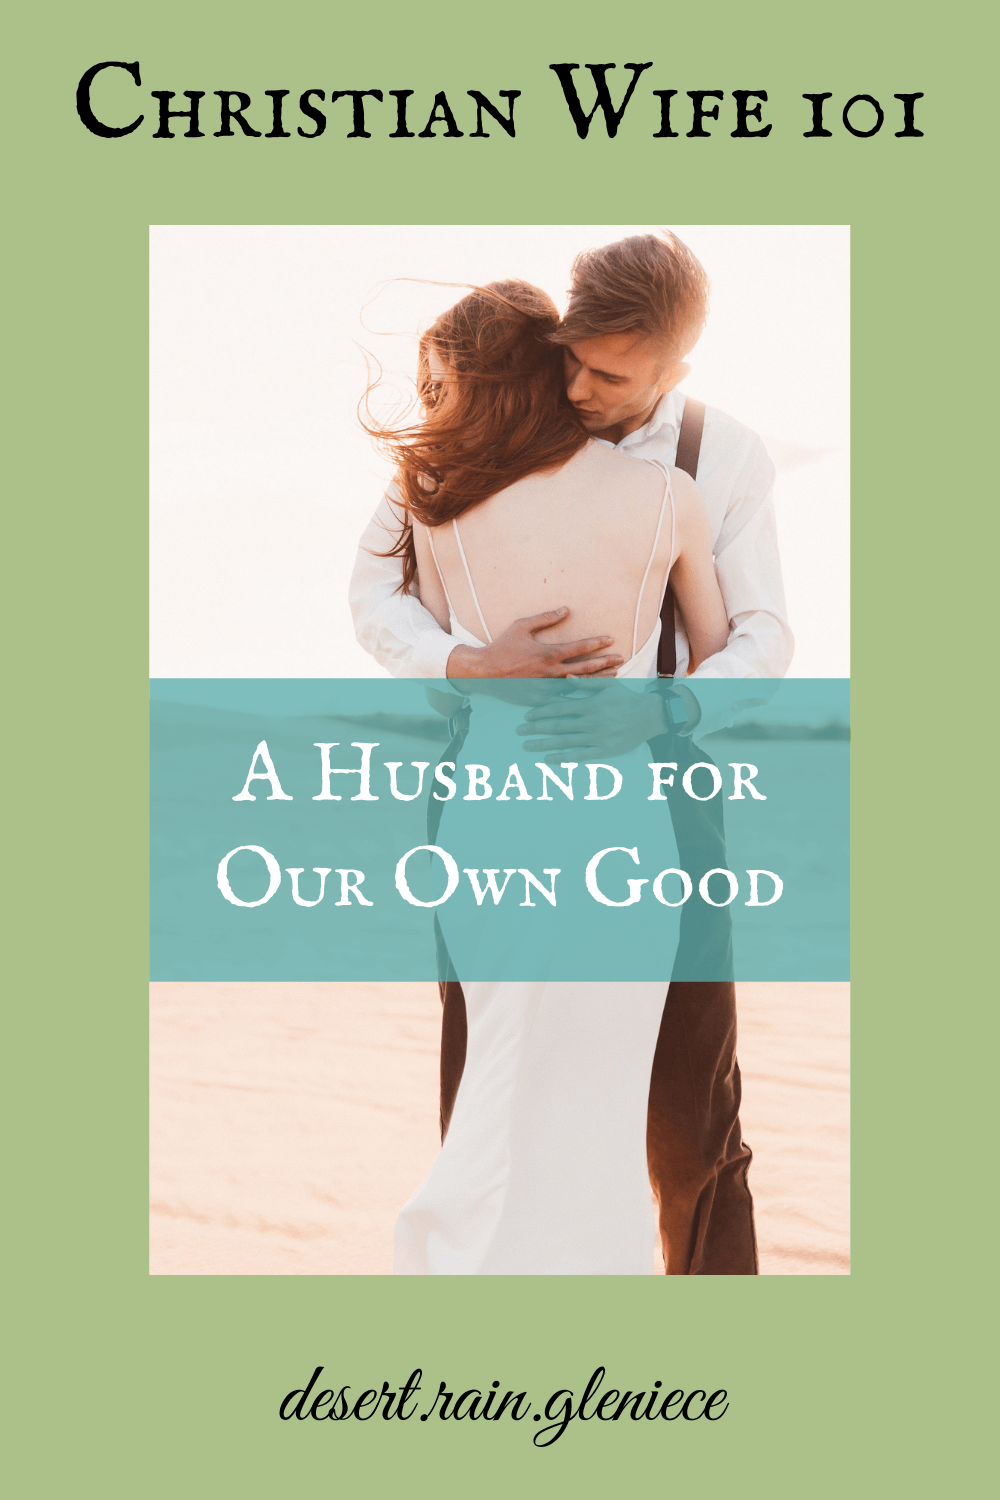 As a starry-eyed bride, our husband's purpose was to fulfill our desires. We had no idea God's purpose for him was for our own spiritual good. #christianwife101, #godlyhusband, #godlysubmission, #godlywife